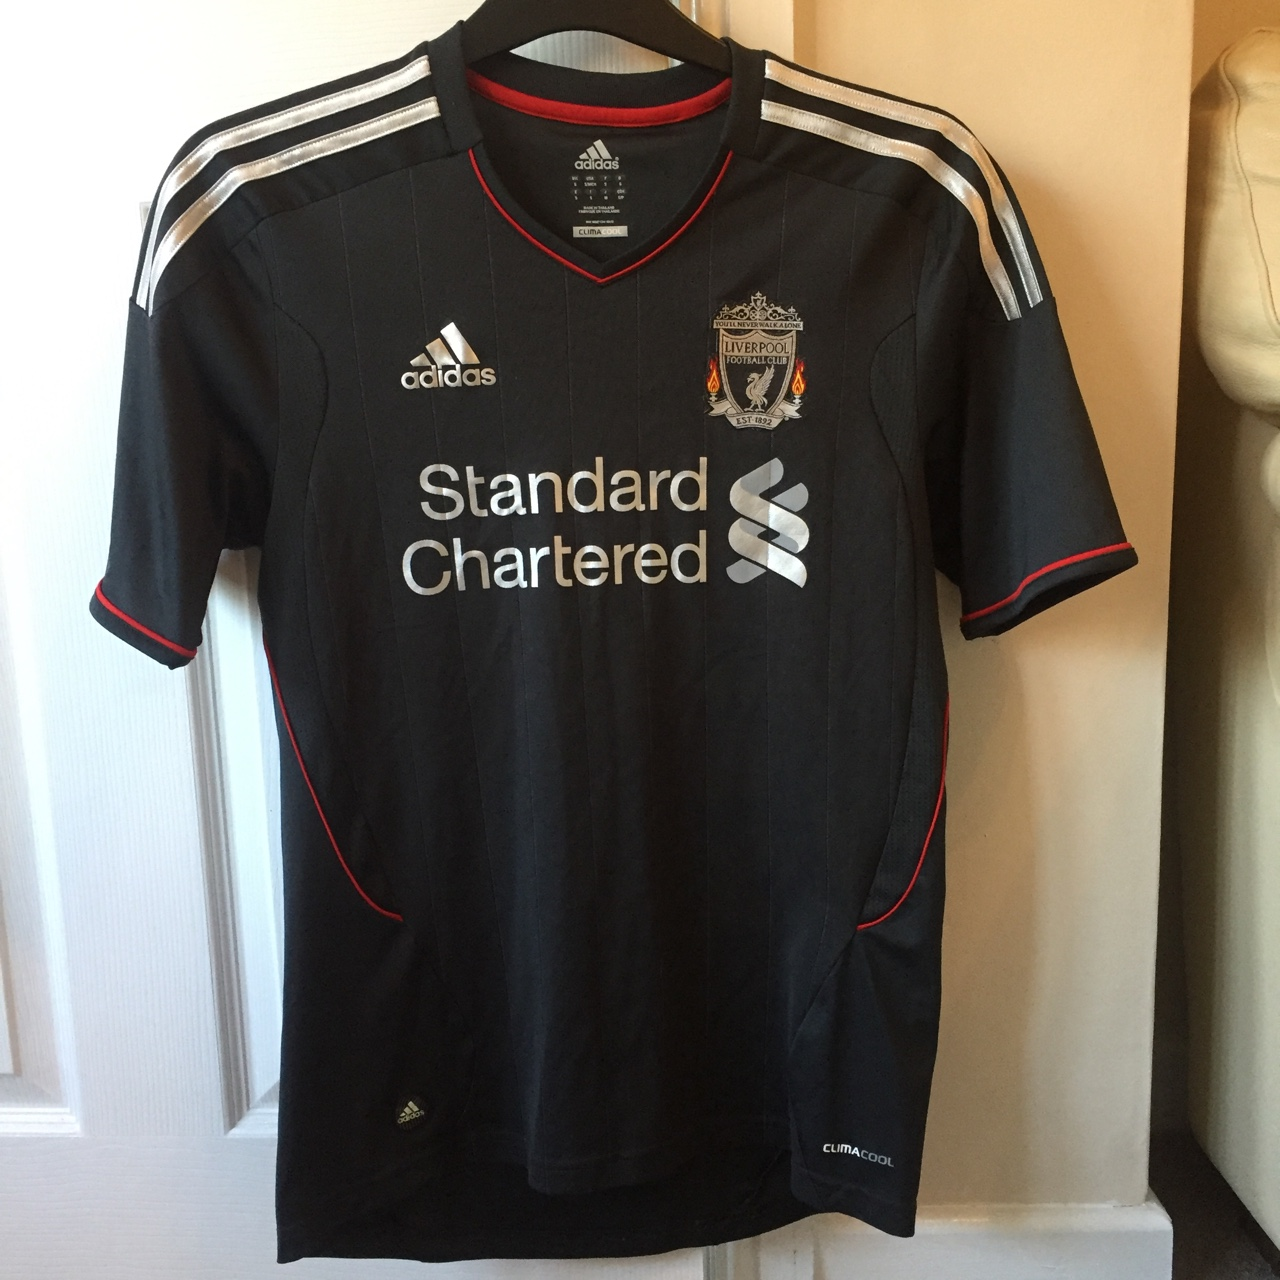 low priced e138f 3ecad Small size black and grey Liverpool FC away kit... - Depop